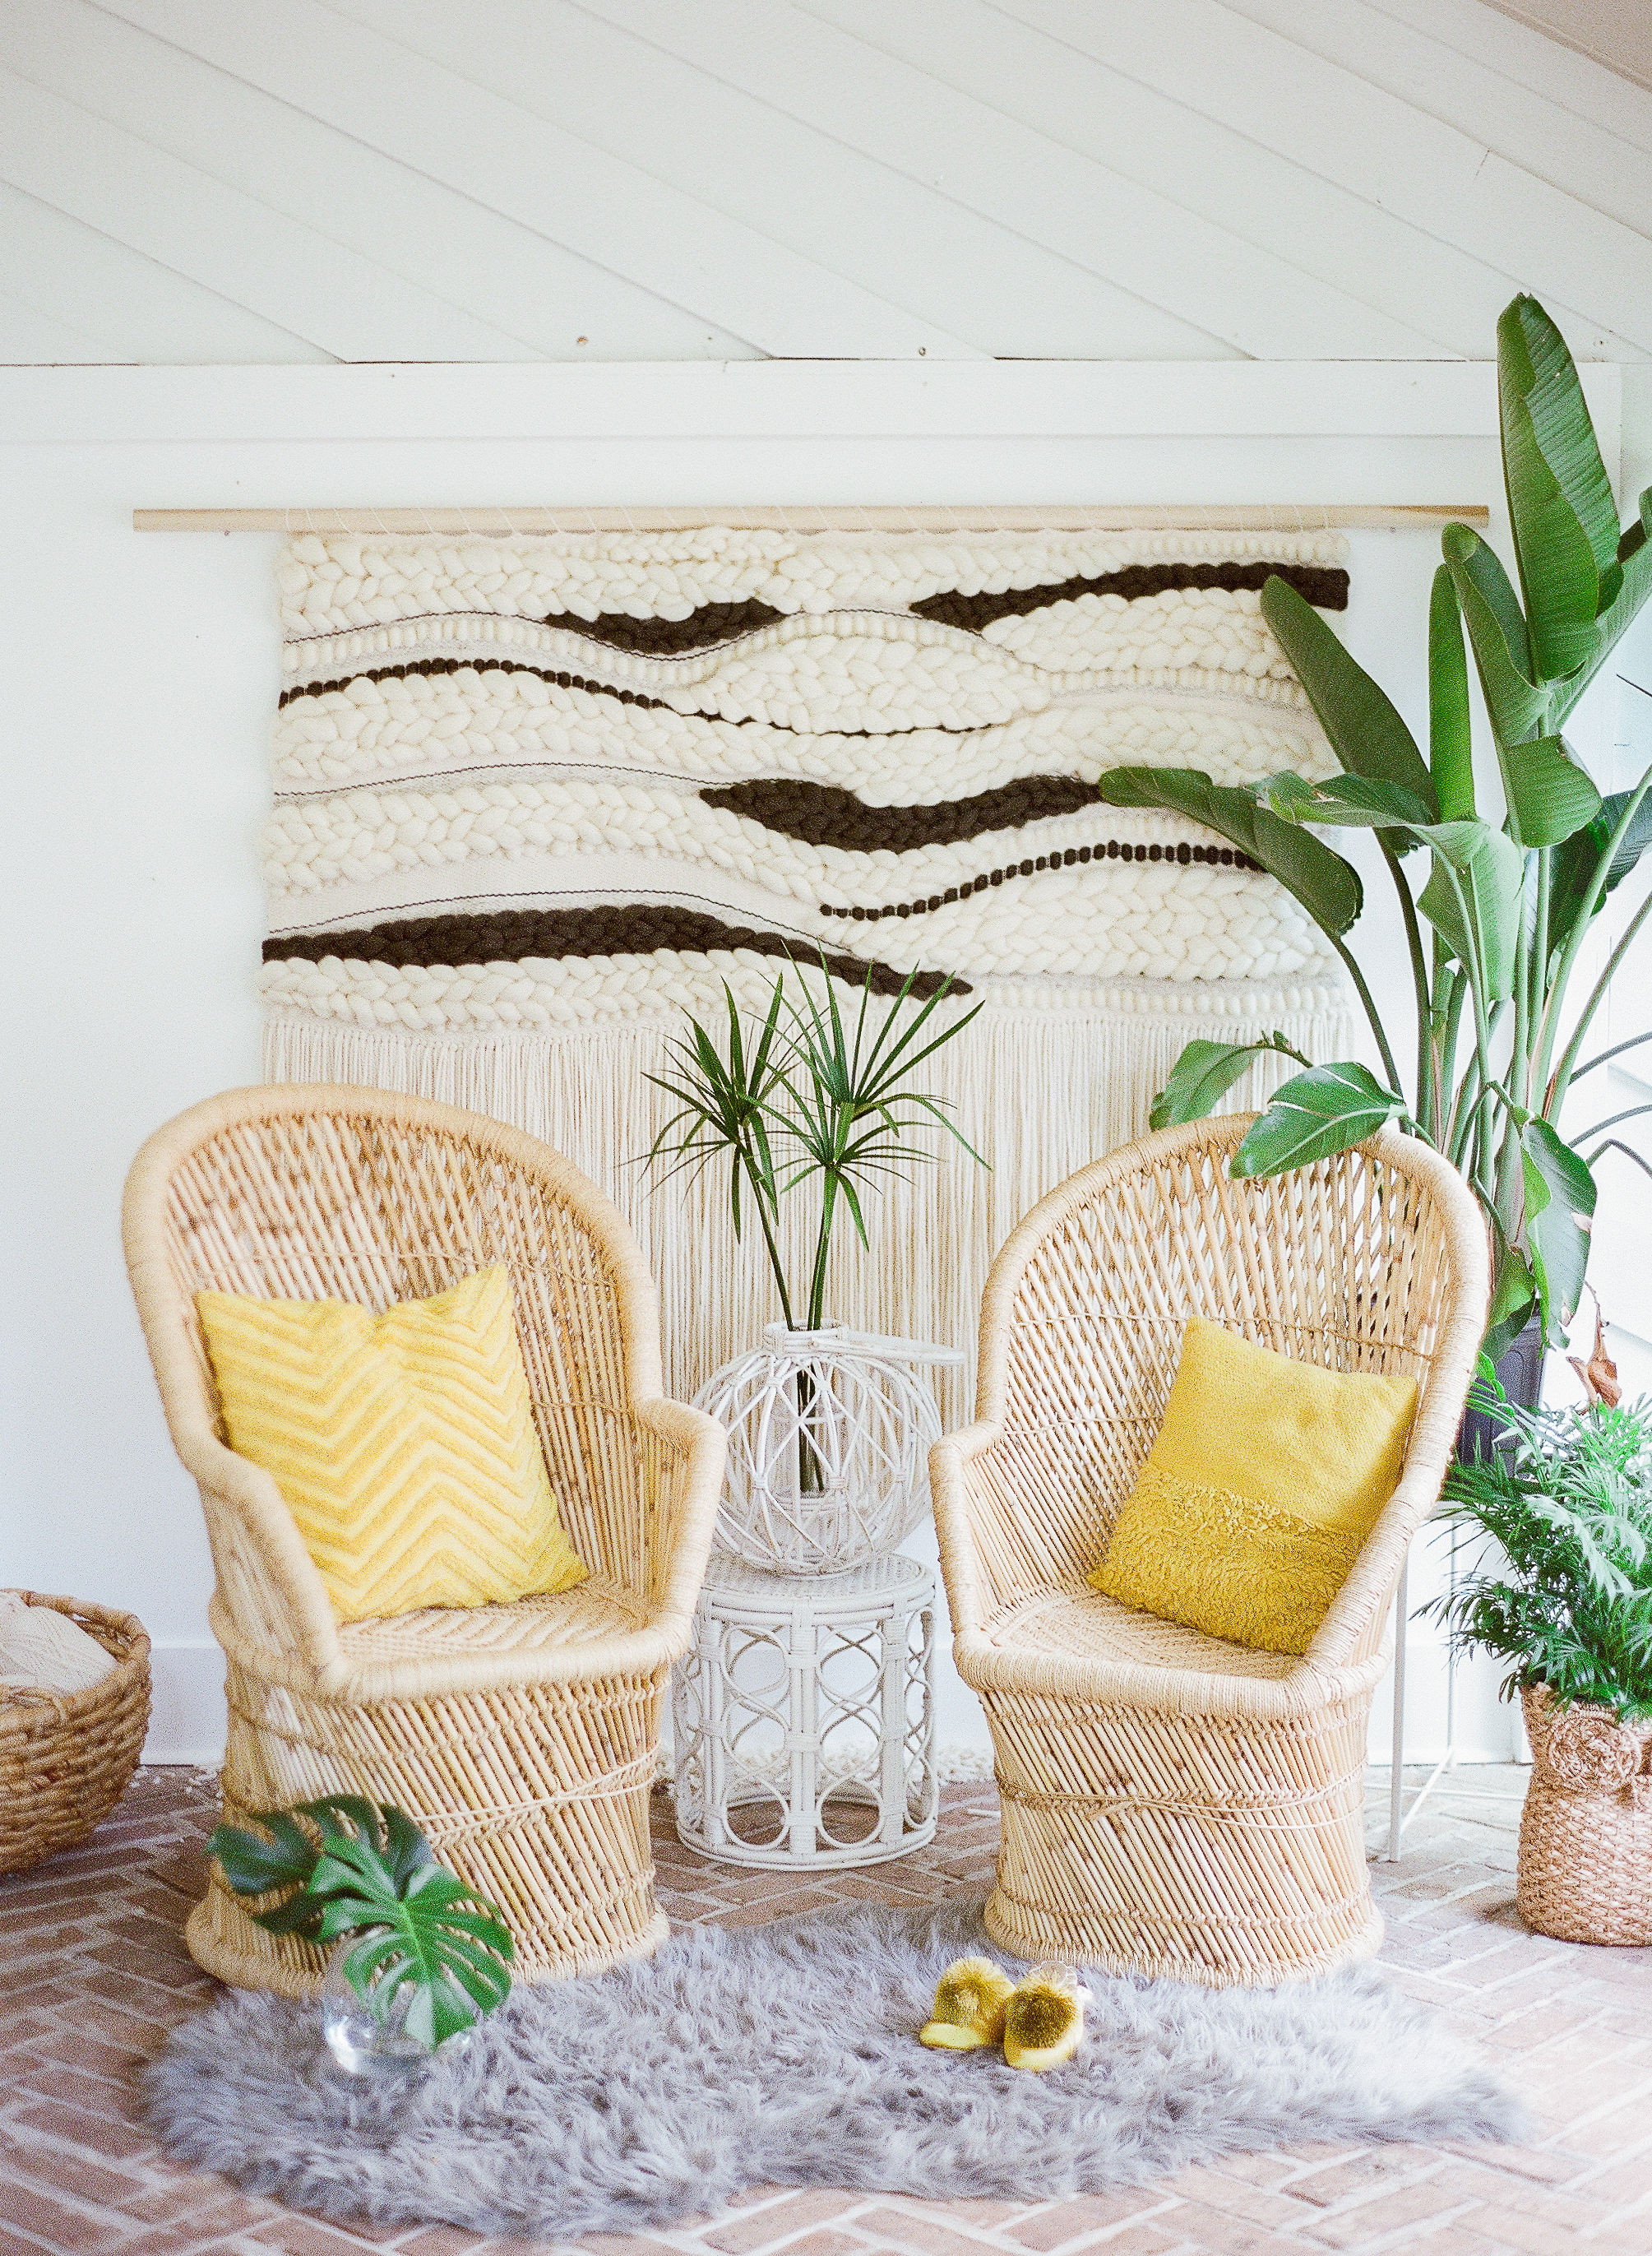 Palm beach Florida themed decor with woven wall hanging and peacock chairs